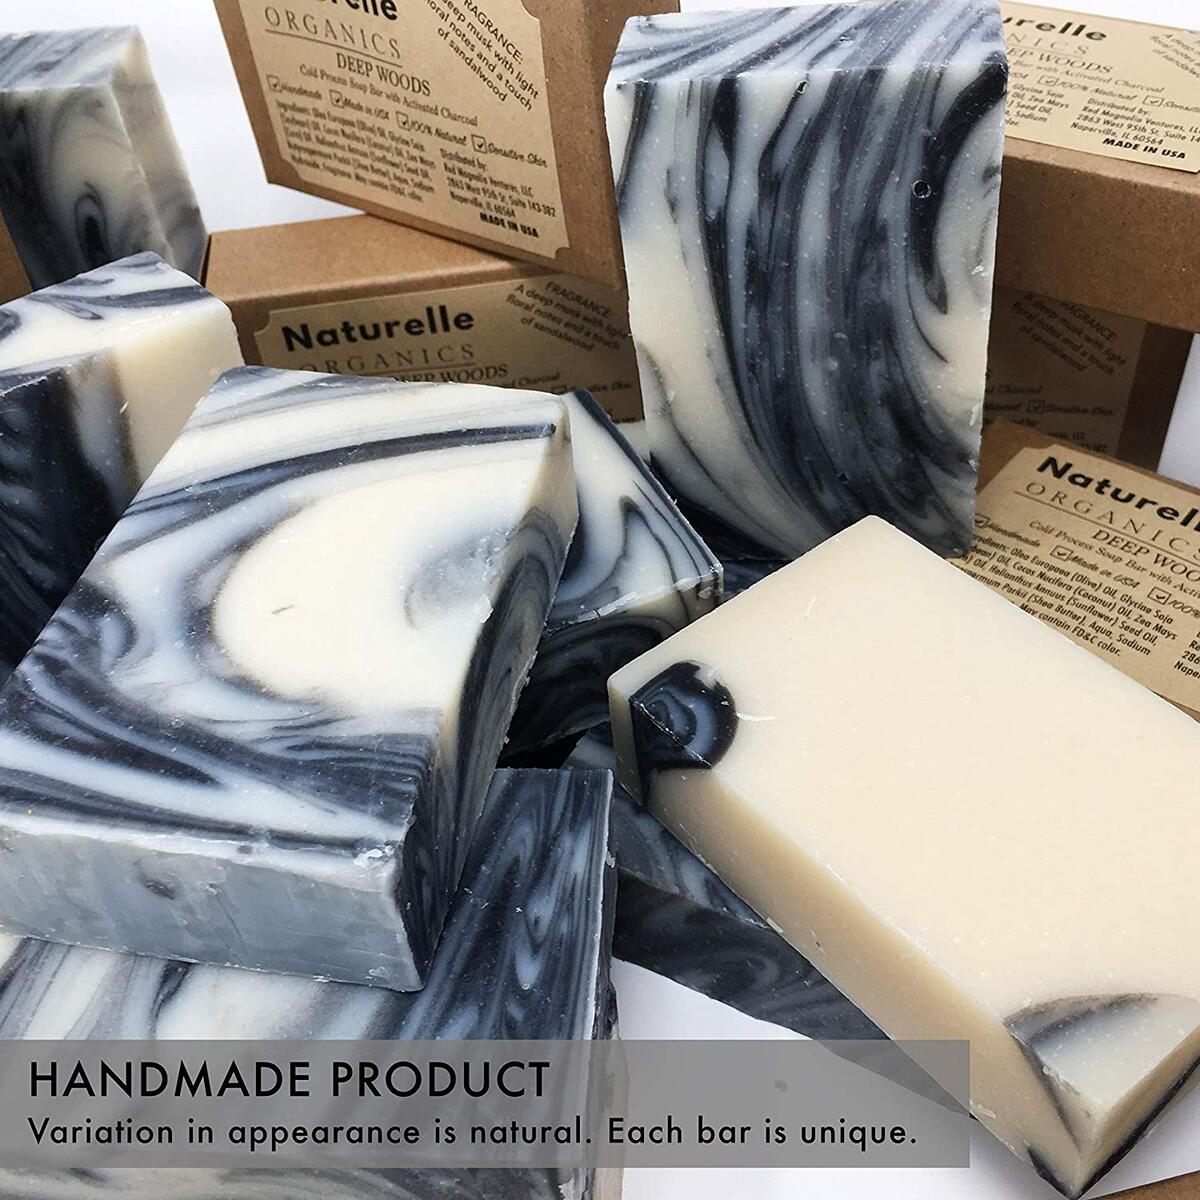 Activated Charcoal Olive Oil Soap - For Men and Women – Made in USA Cold Process Soap with Deep Musk, Sandalwood and Patchouli, 4,8 oz - For Sensitive Skin, Acne, Eczema, Psoriasis Face and Body Soap